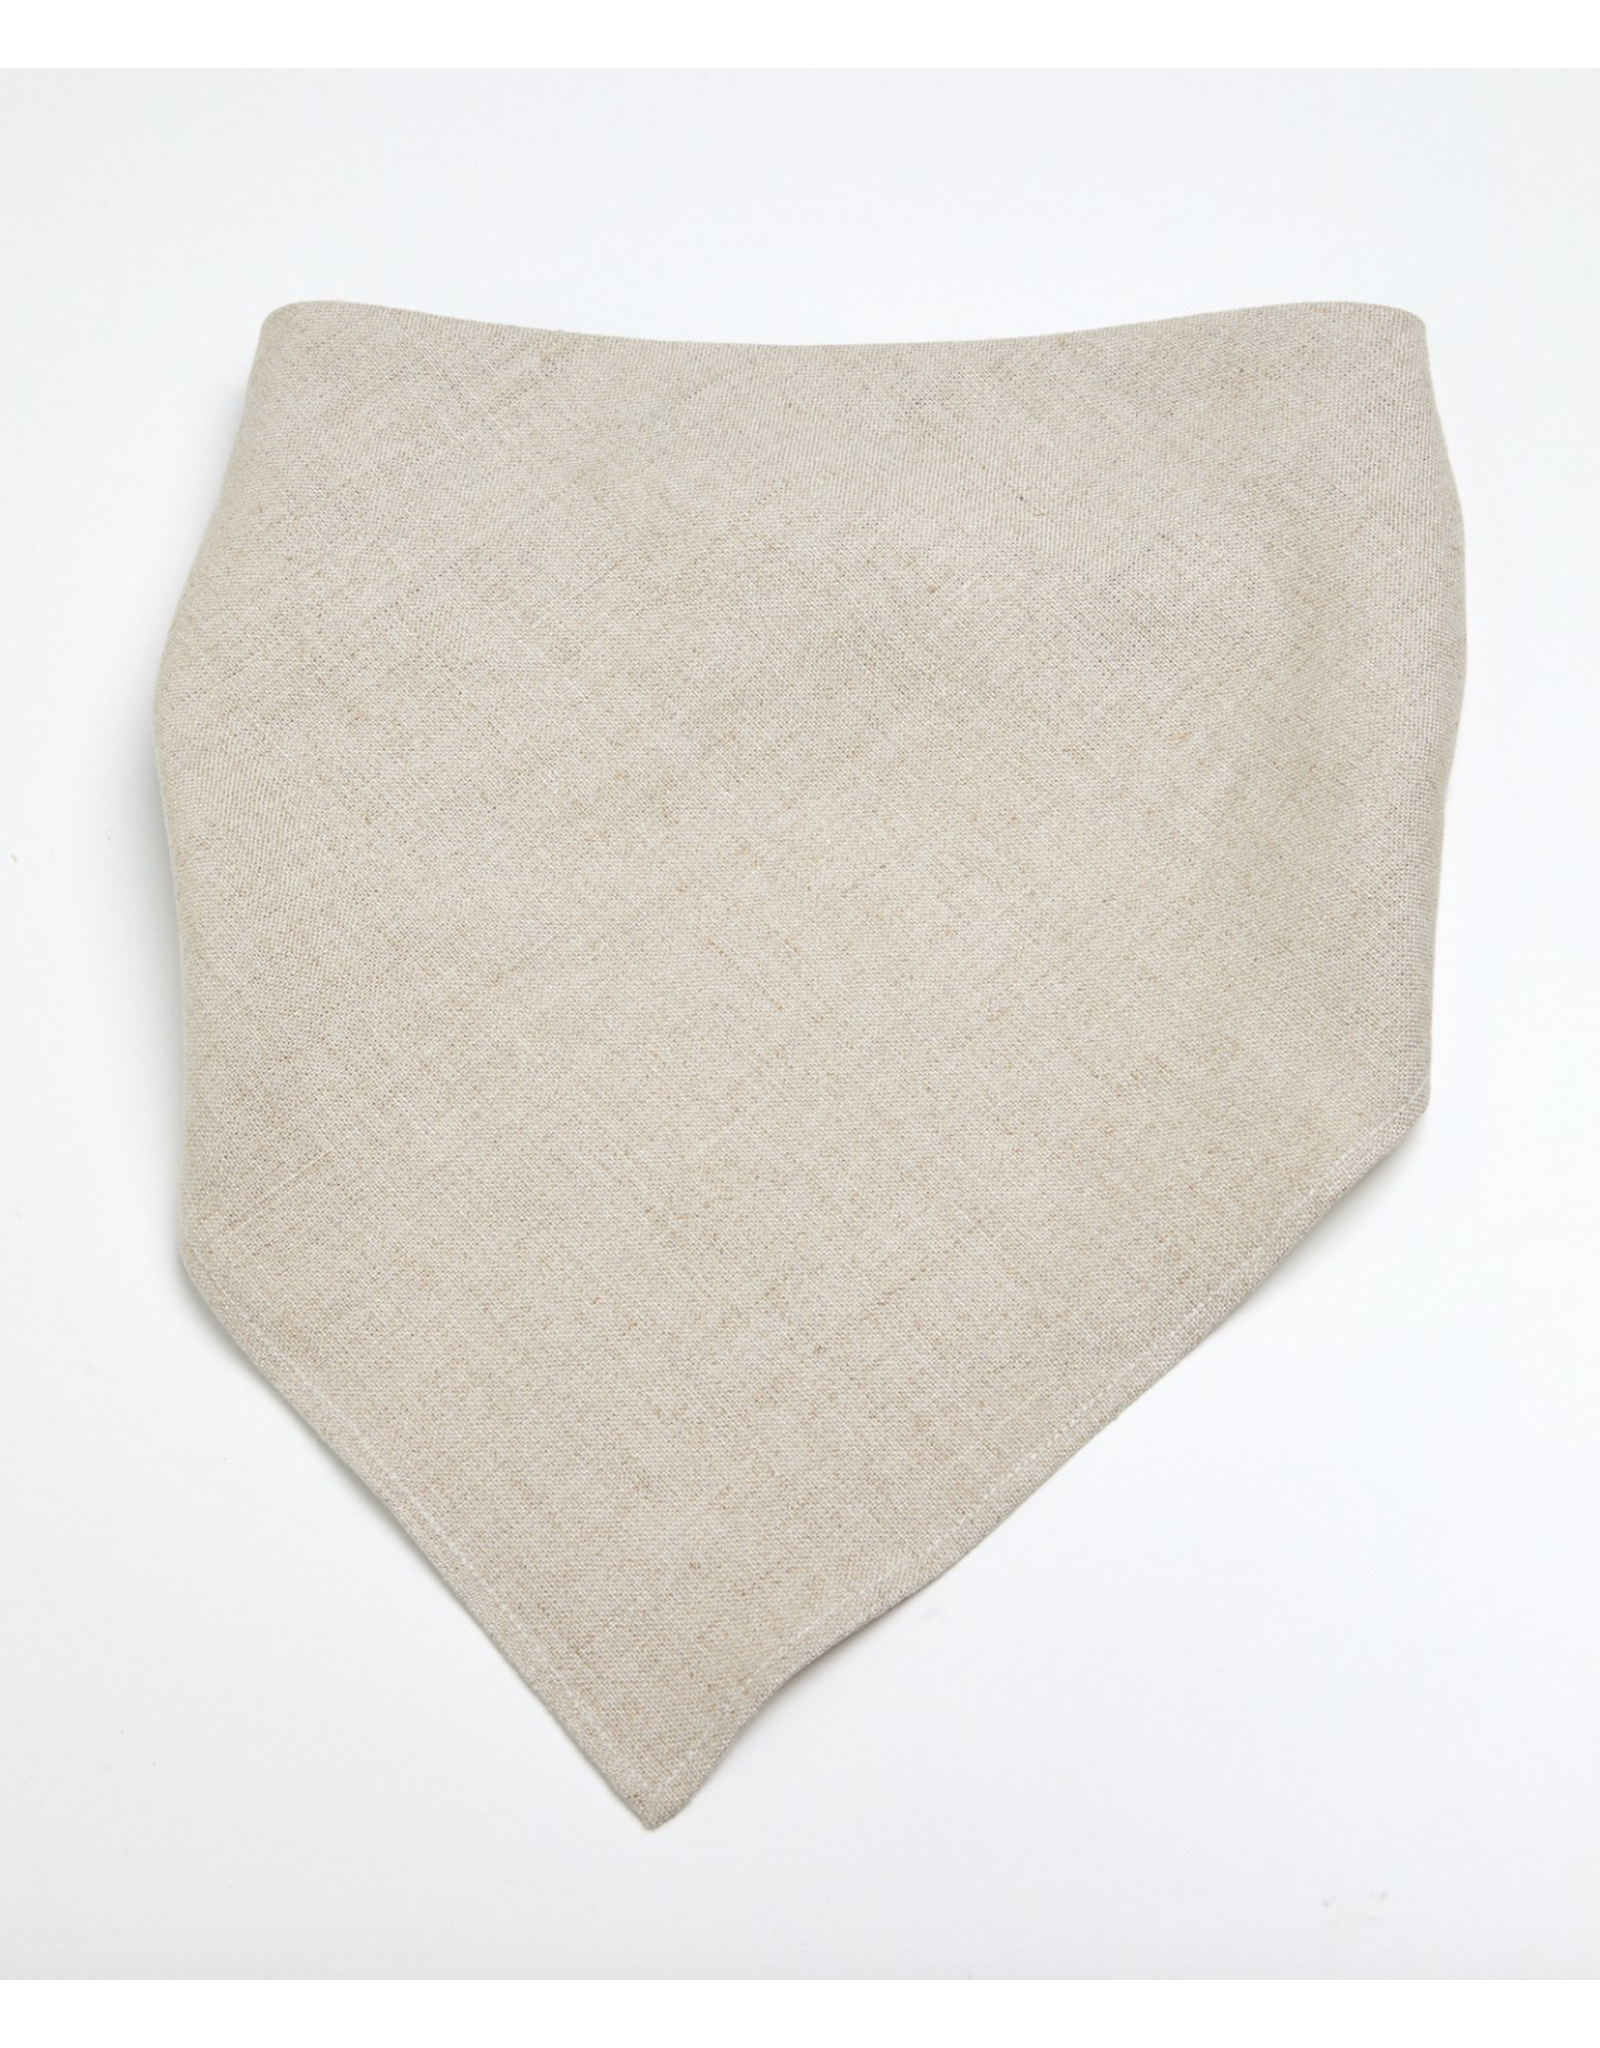 Heirloom Foulard Gossamer argile